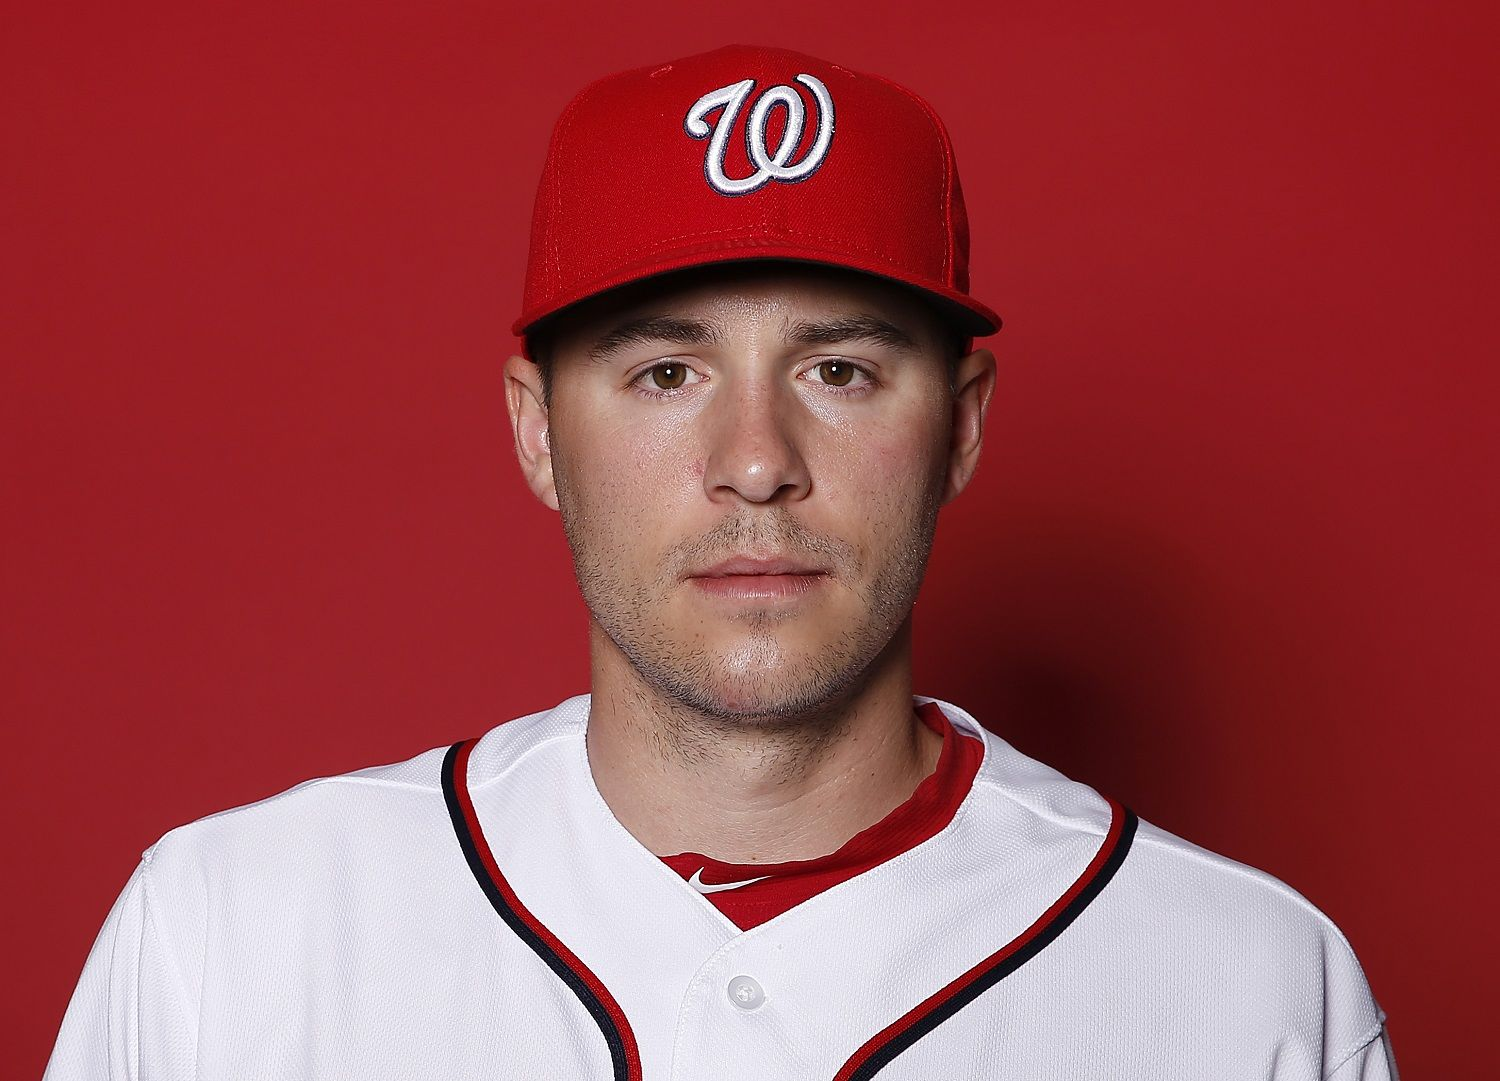 WEST PALM BEACH, FLORIDA - FEBRUARY 22:  Patrick Corbin #46 of the Washington Nationals poses for a portrait on Photo Day at FITTEAM Ballpark of The Palm Beaches during on February 22, 2019 in West Palm Beach, Florida. (Photo by Michael Reaves/Getty Images)